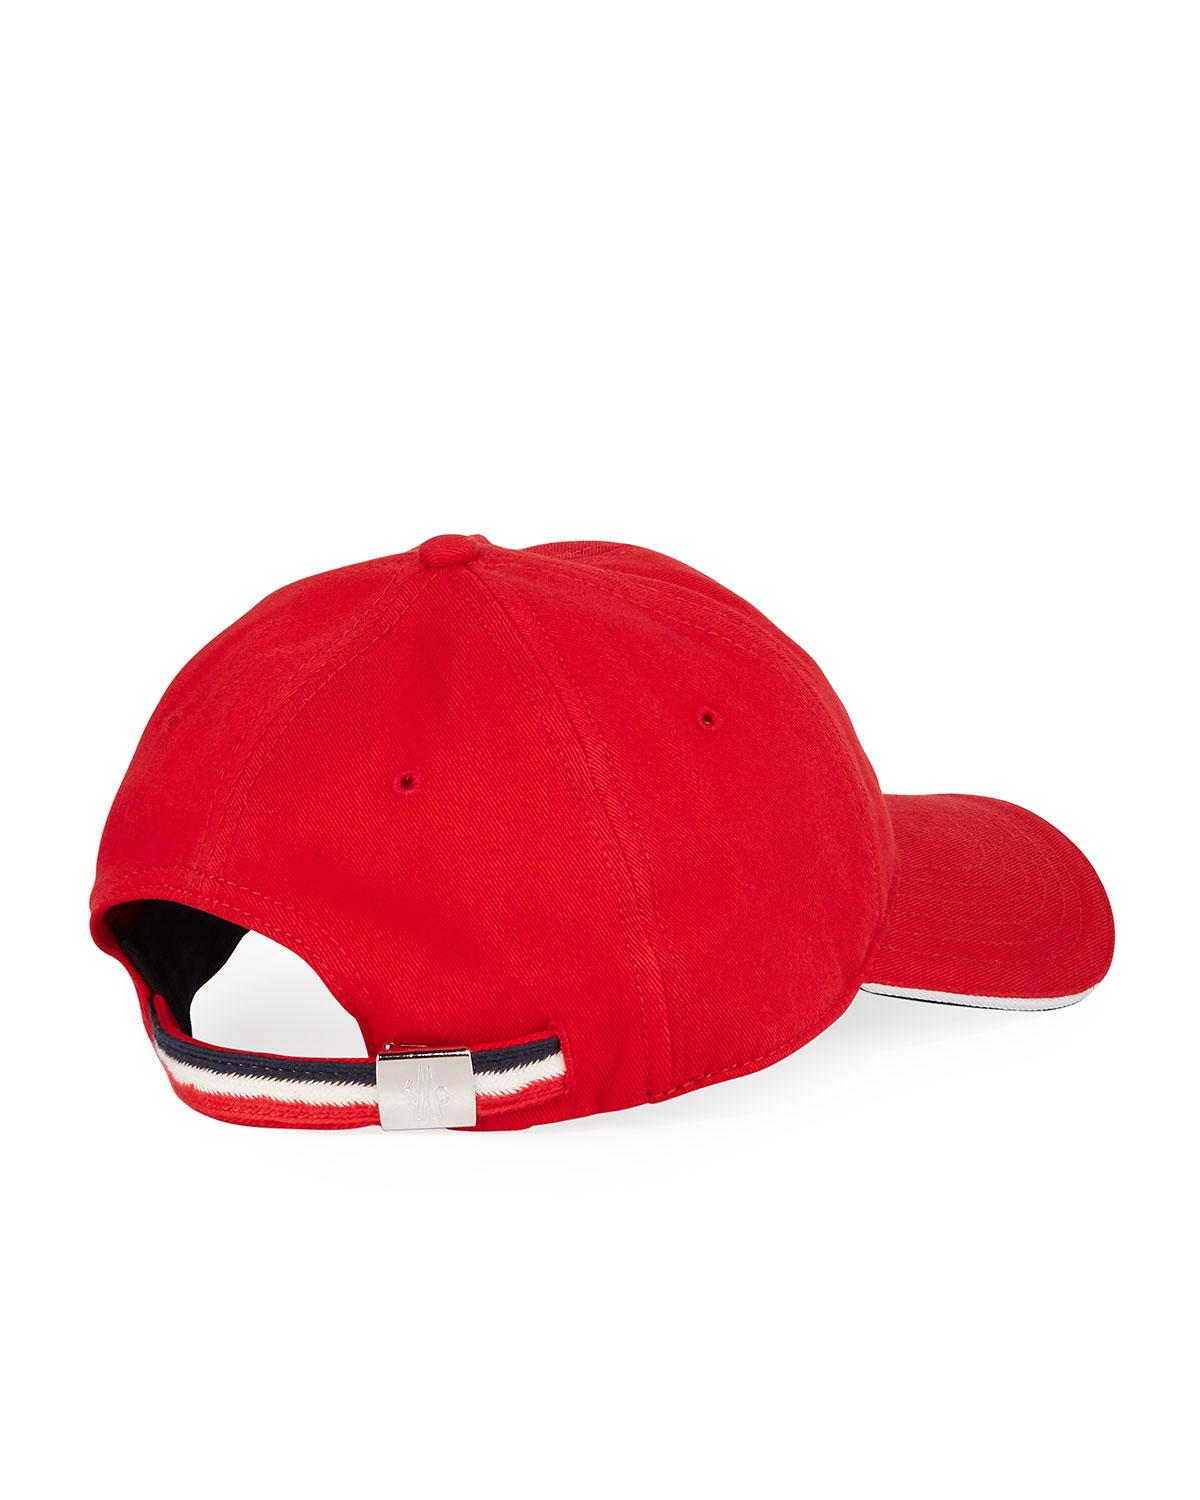 73a76a82953 Lyst - Moncler Men s Small-logo Baseball Cap in Red for Men